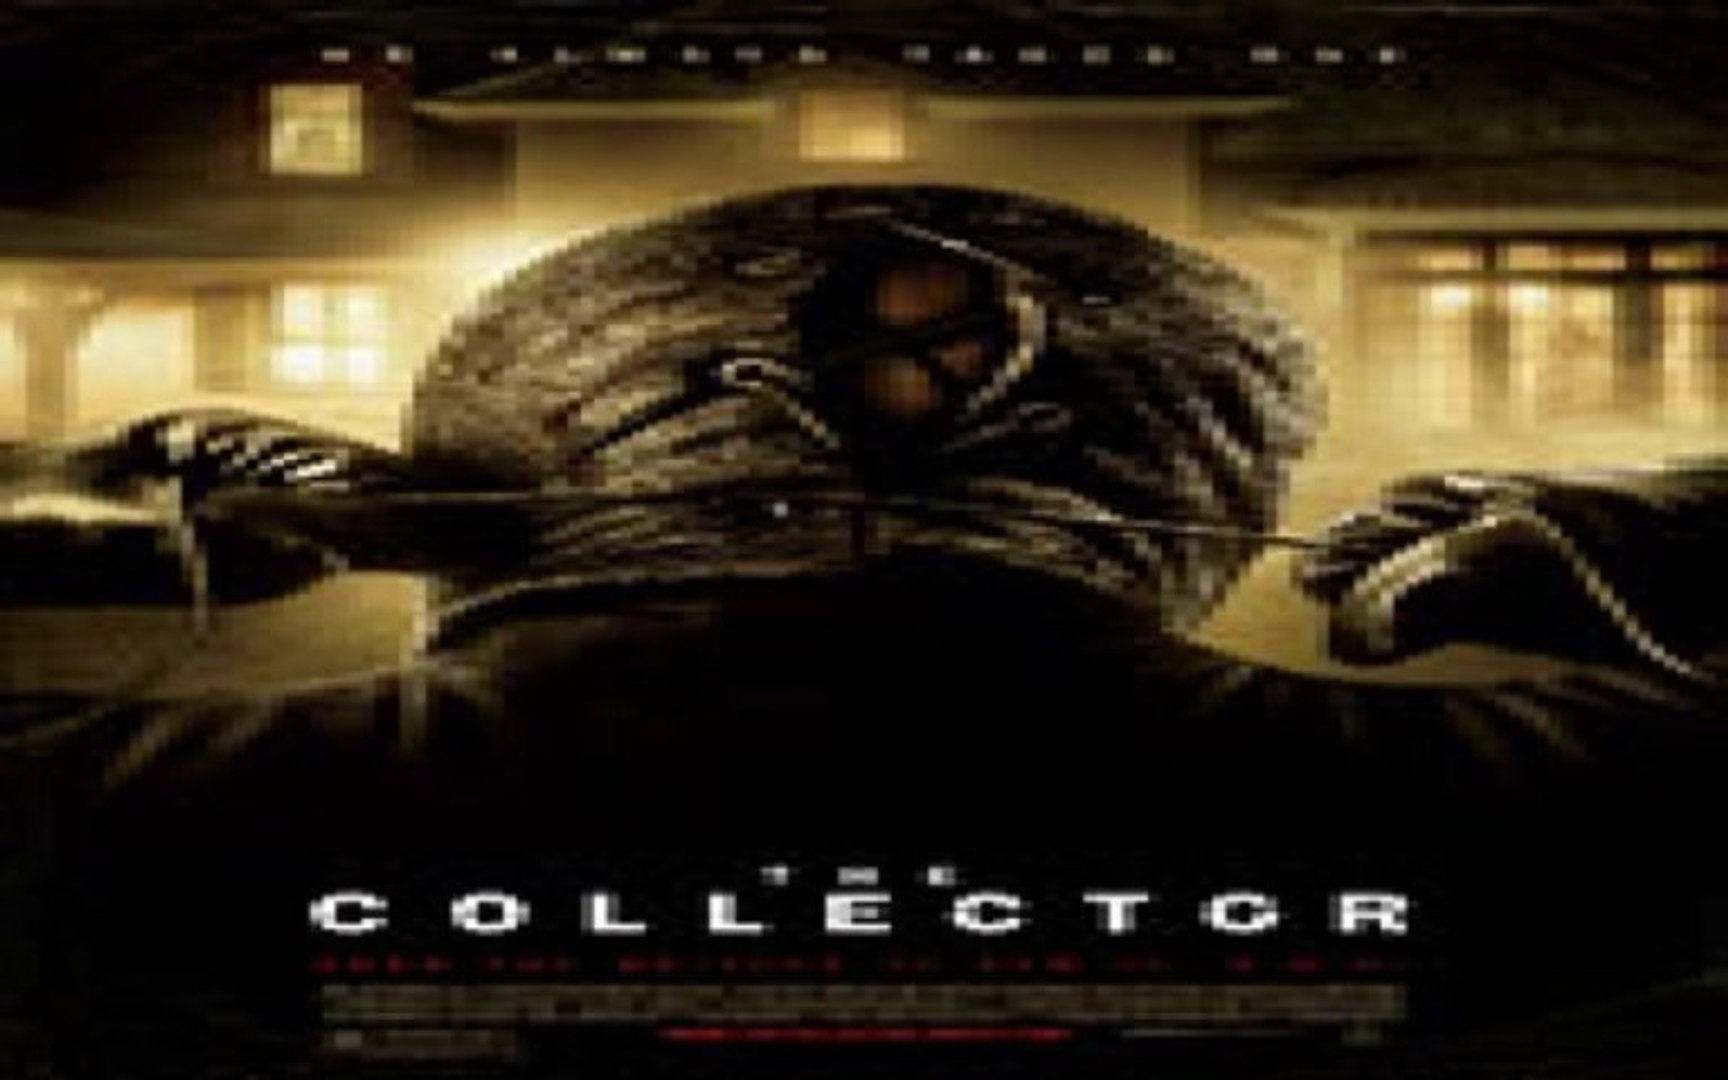 Watch The Collector (2009) Online Free